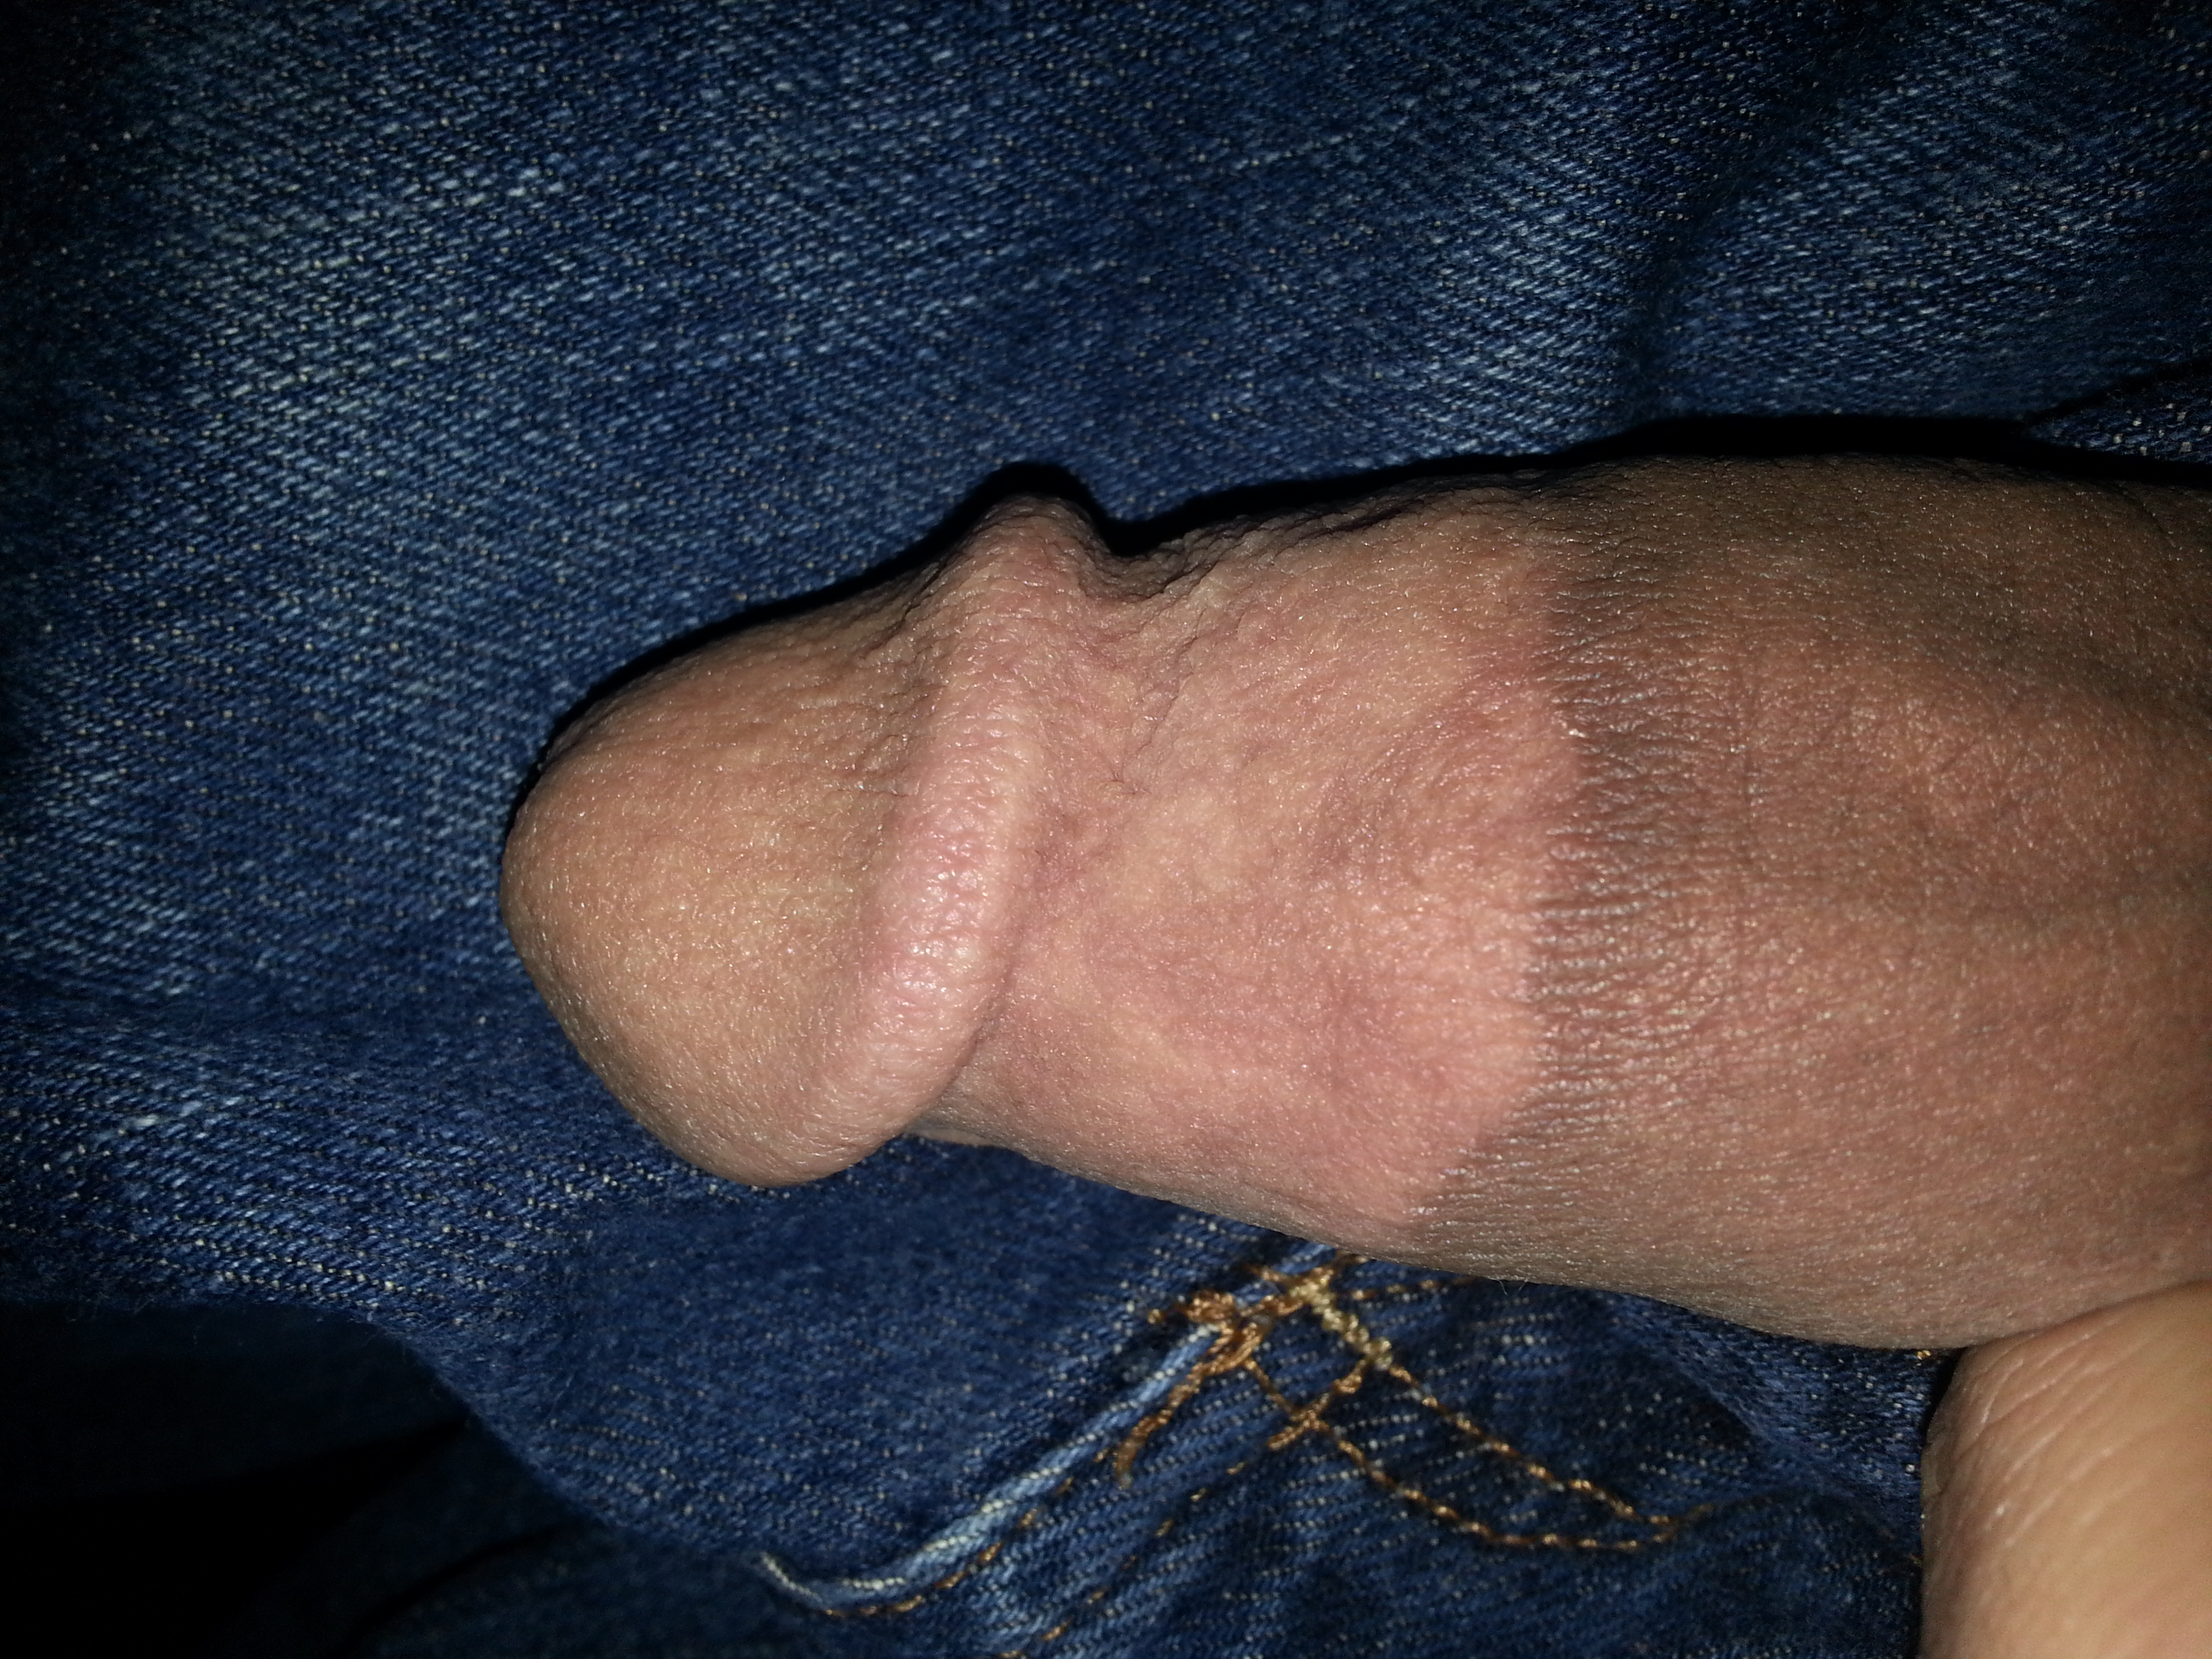 Discoloration of penis skin